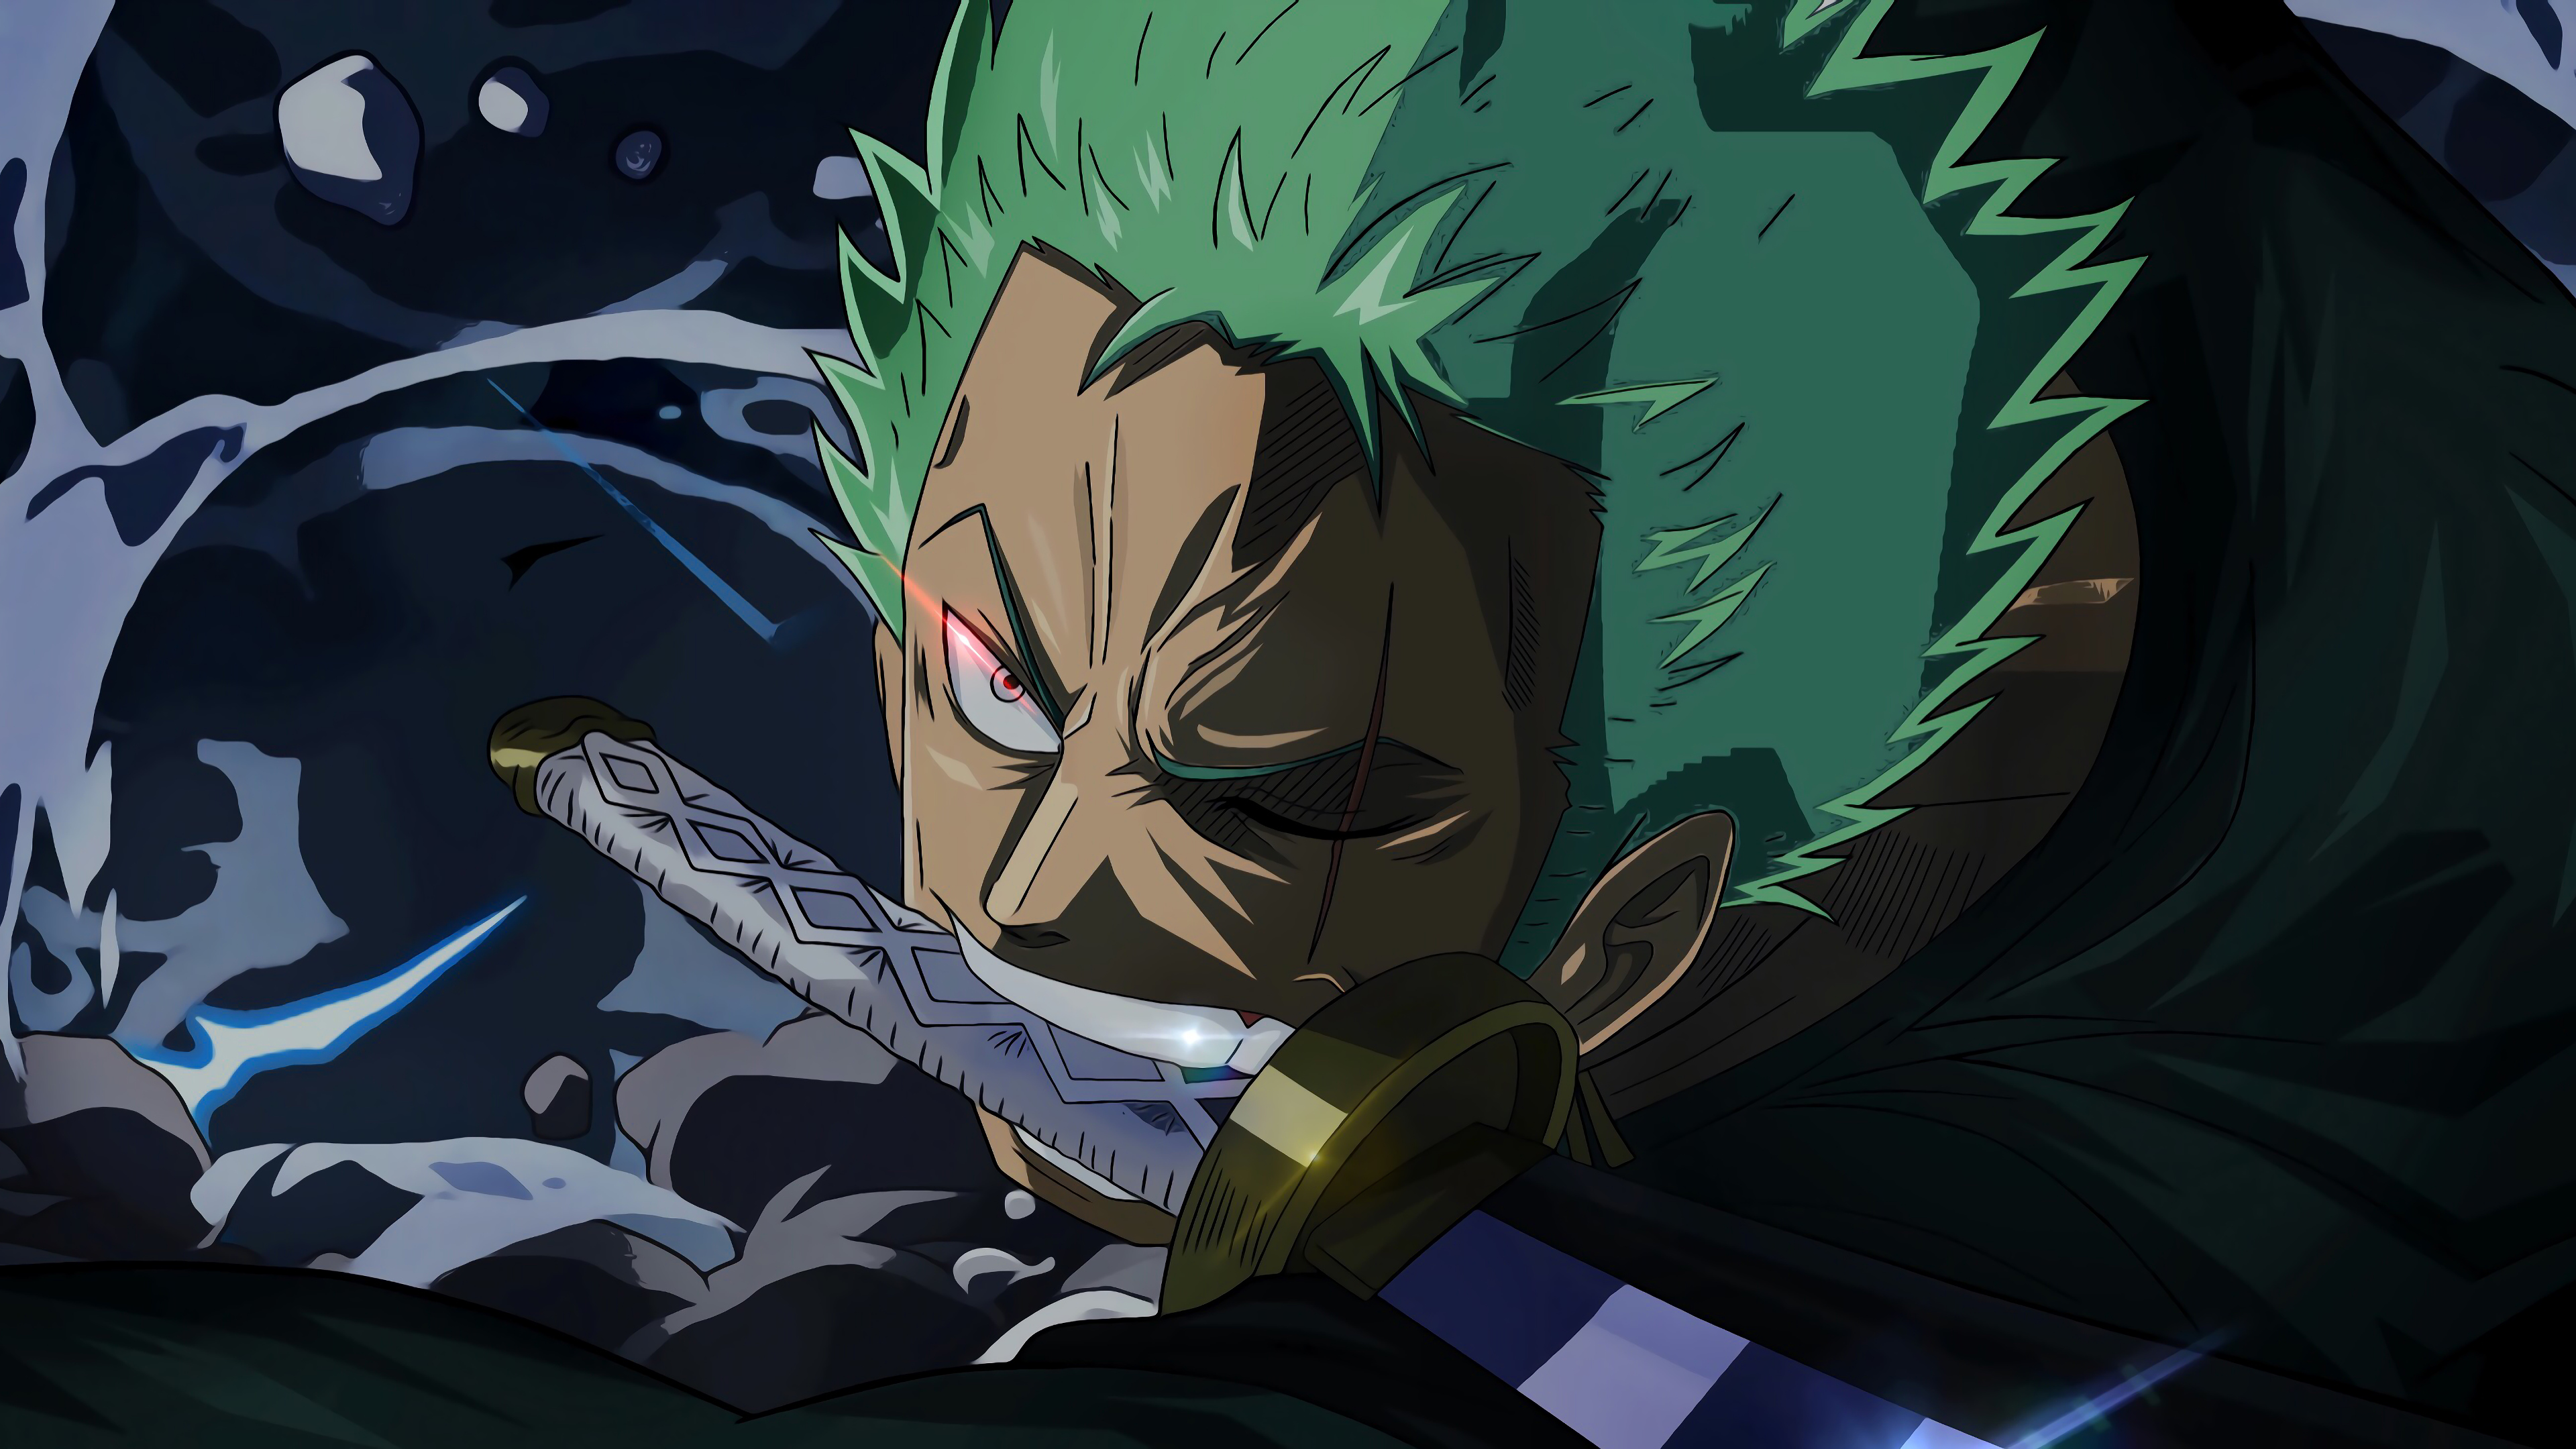 Zoro Wallpaper Hd 42 Images Dodowallpaper